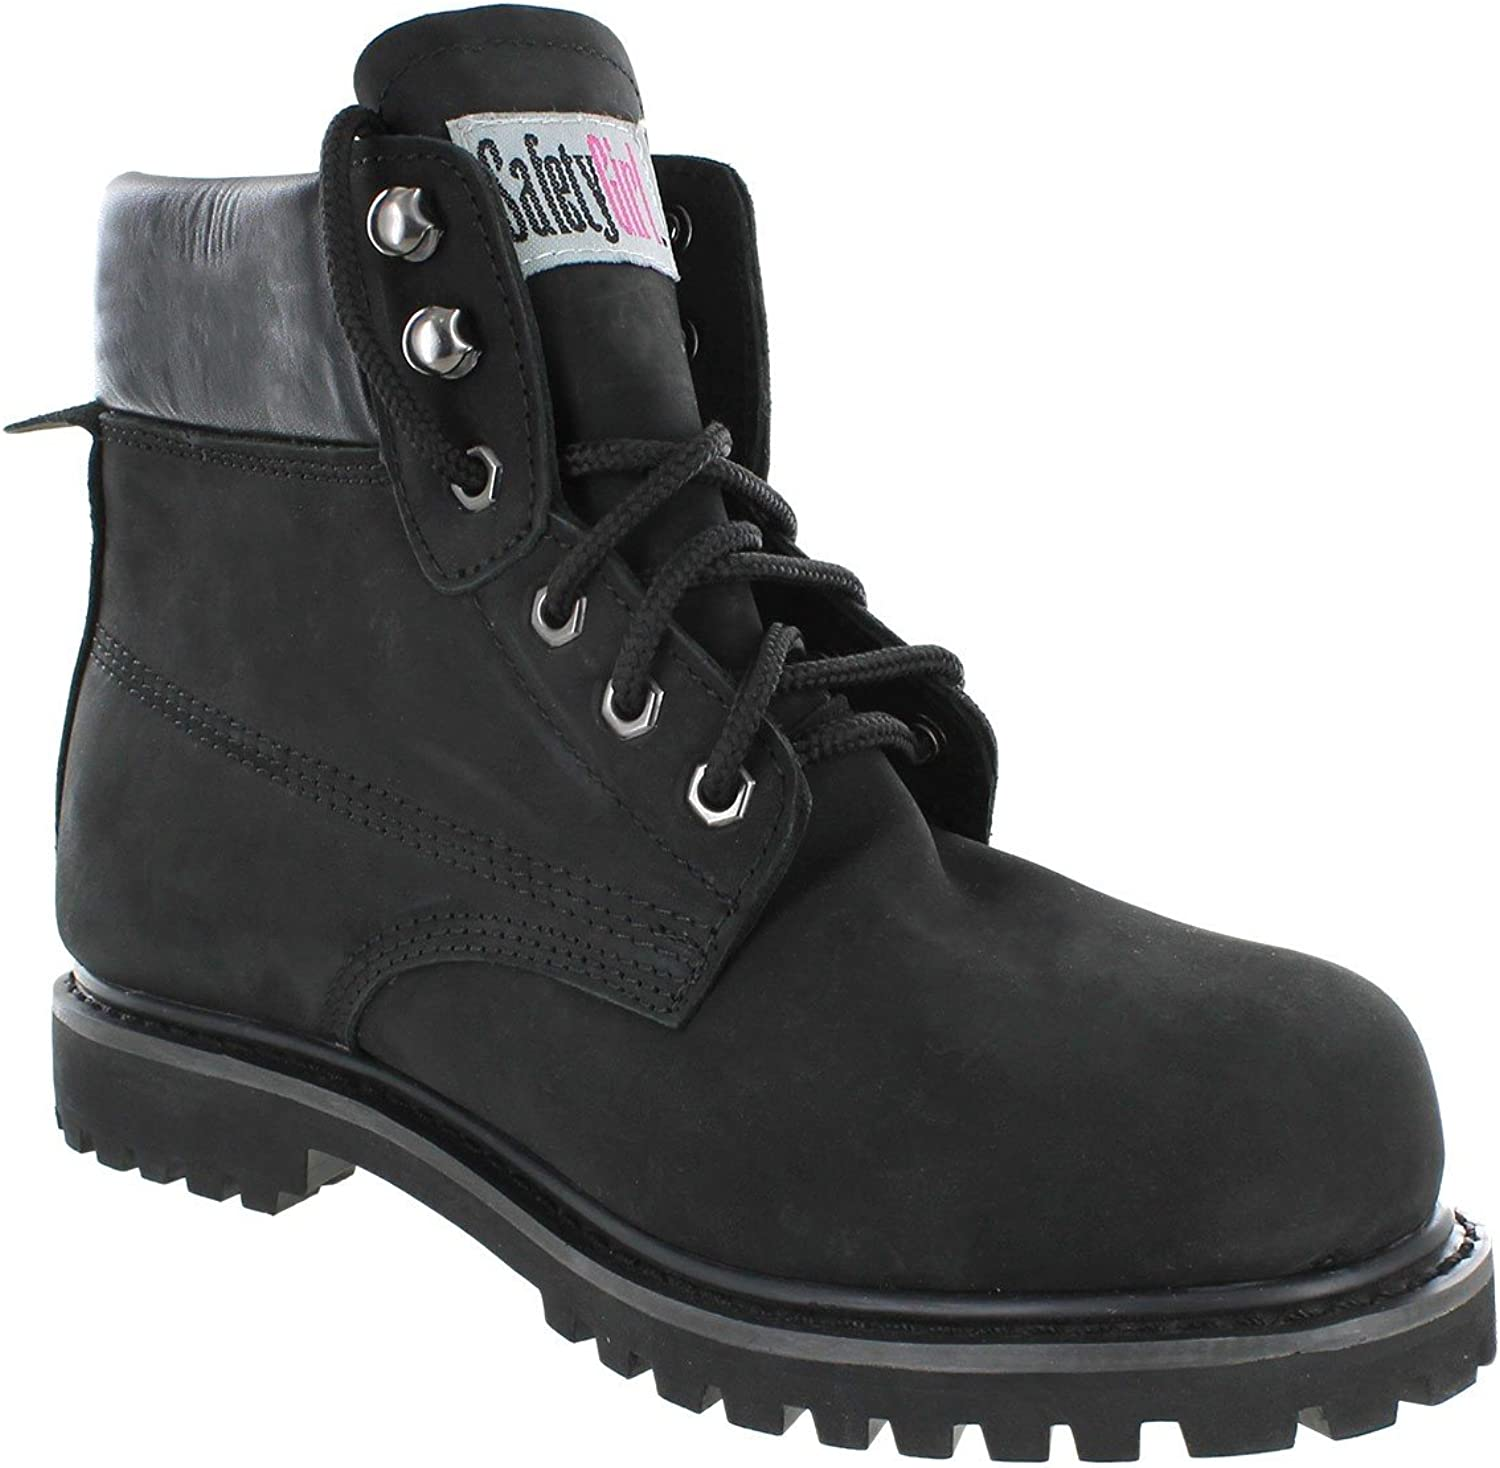 Safety Girl CSGBOTW1000032438-BLK-ST-11.5M Sheep Skin Lined Women's Work Boots, Toe Size 11.5M, Black